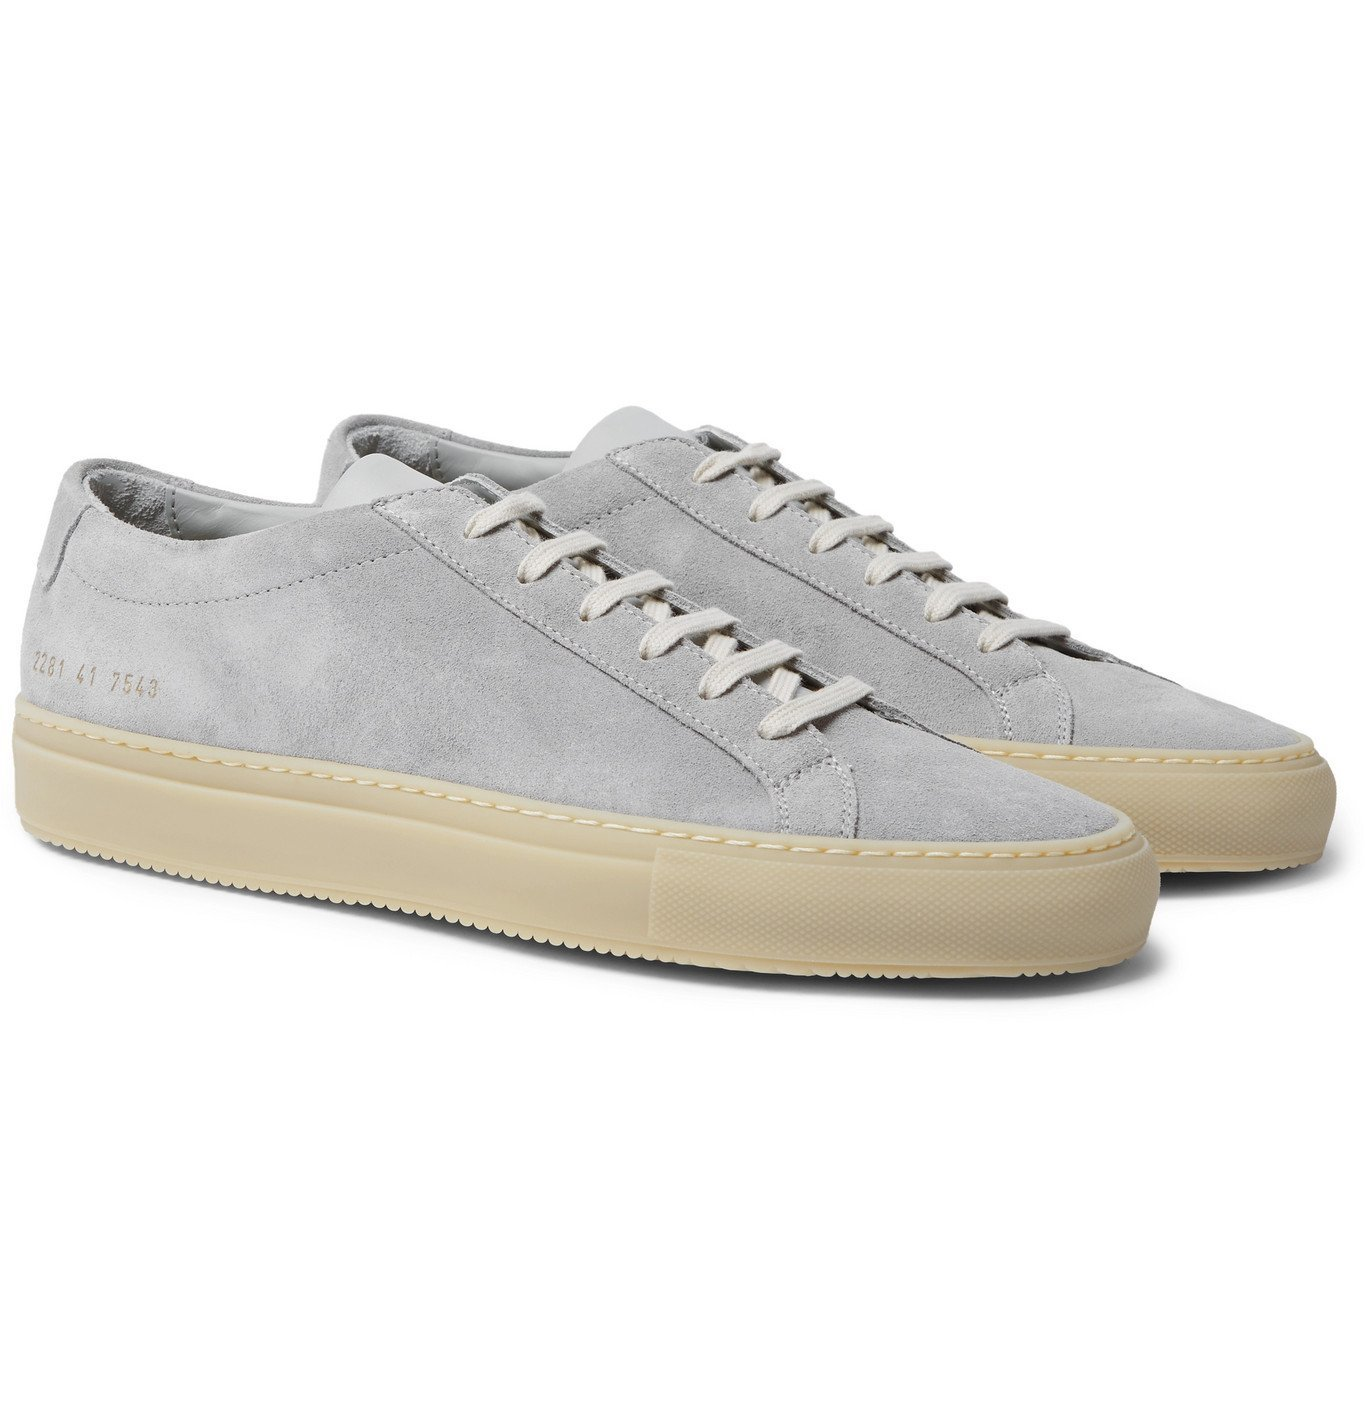 Common Projects - Achilles Suede and Leather Sneakers - Gray